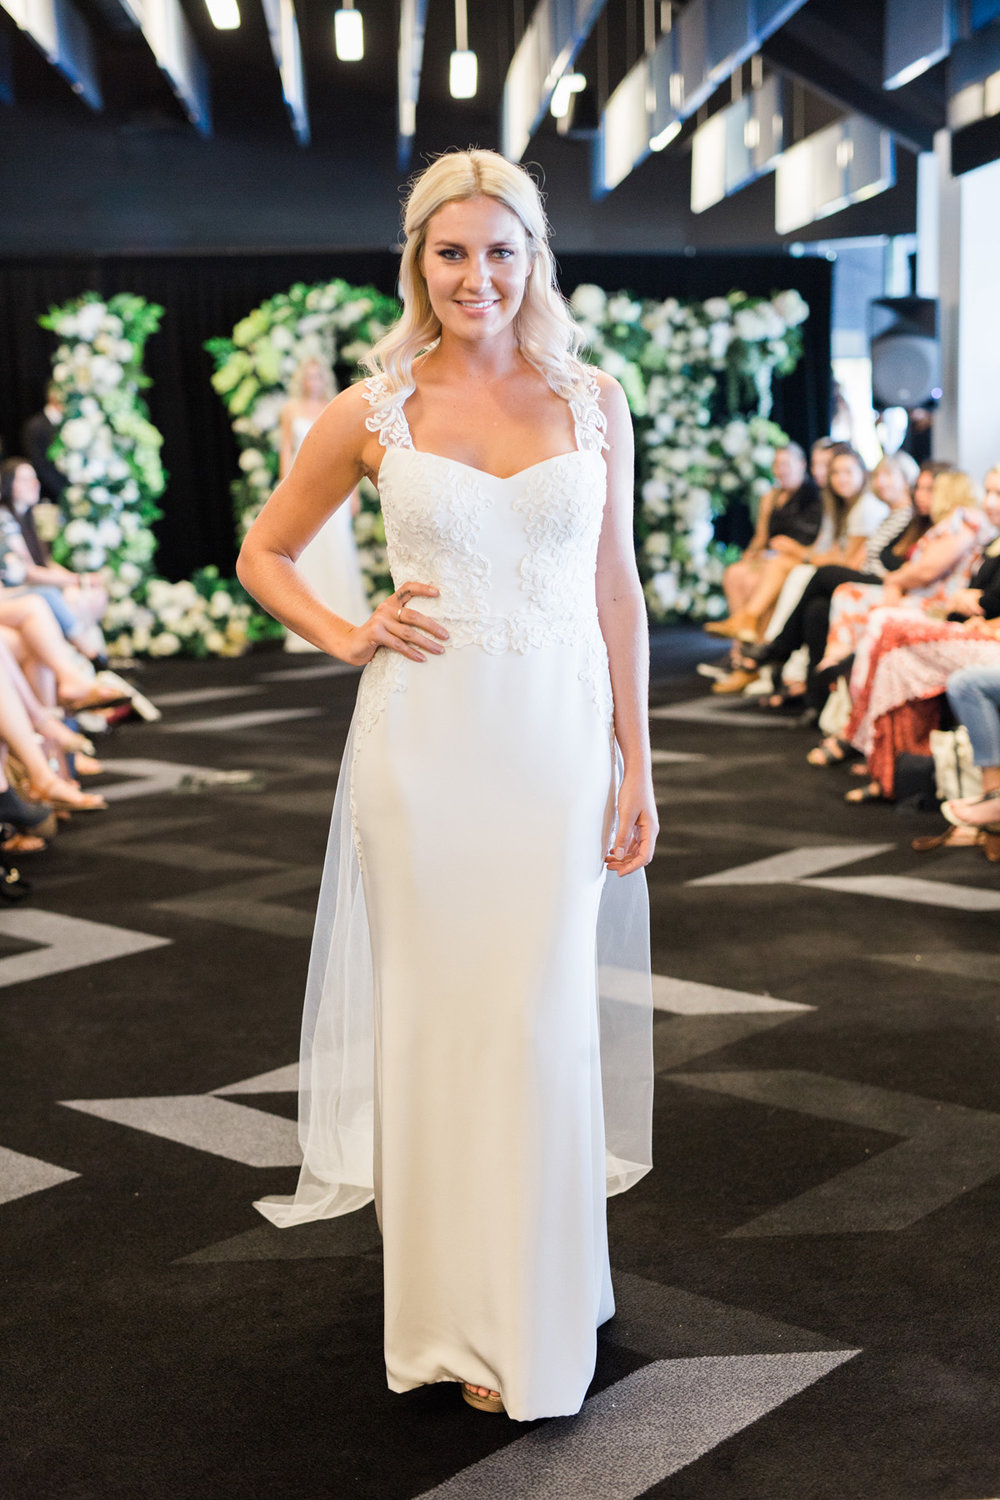 Love-Wedding-Festival-Sydney-Wedding-Gown-Angela-Osagie-17.jpg